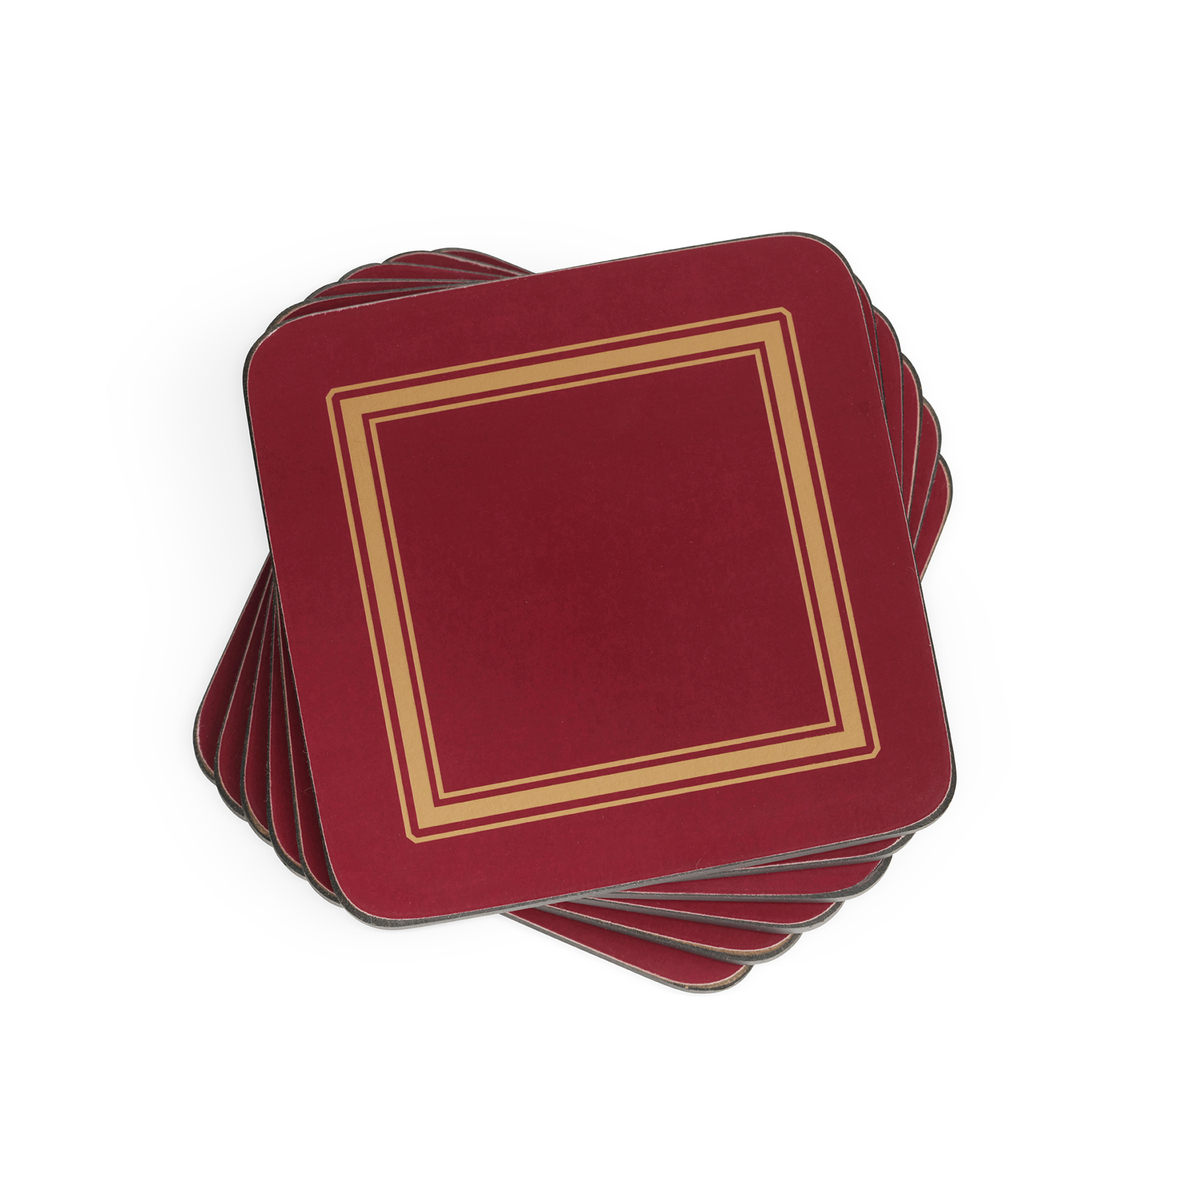 Pimpernel Classic Burgundy Coasters Set of 6 image number 0